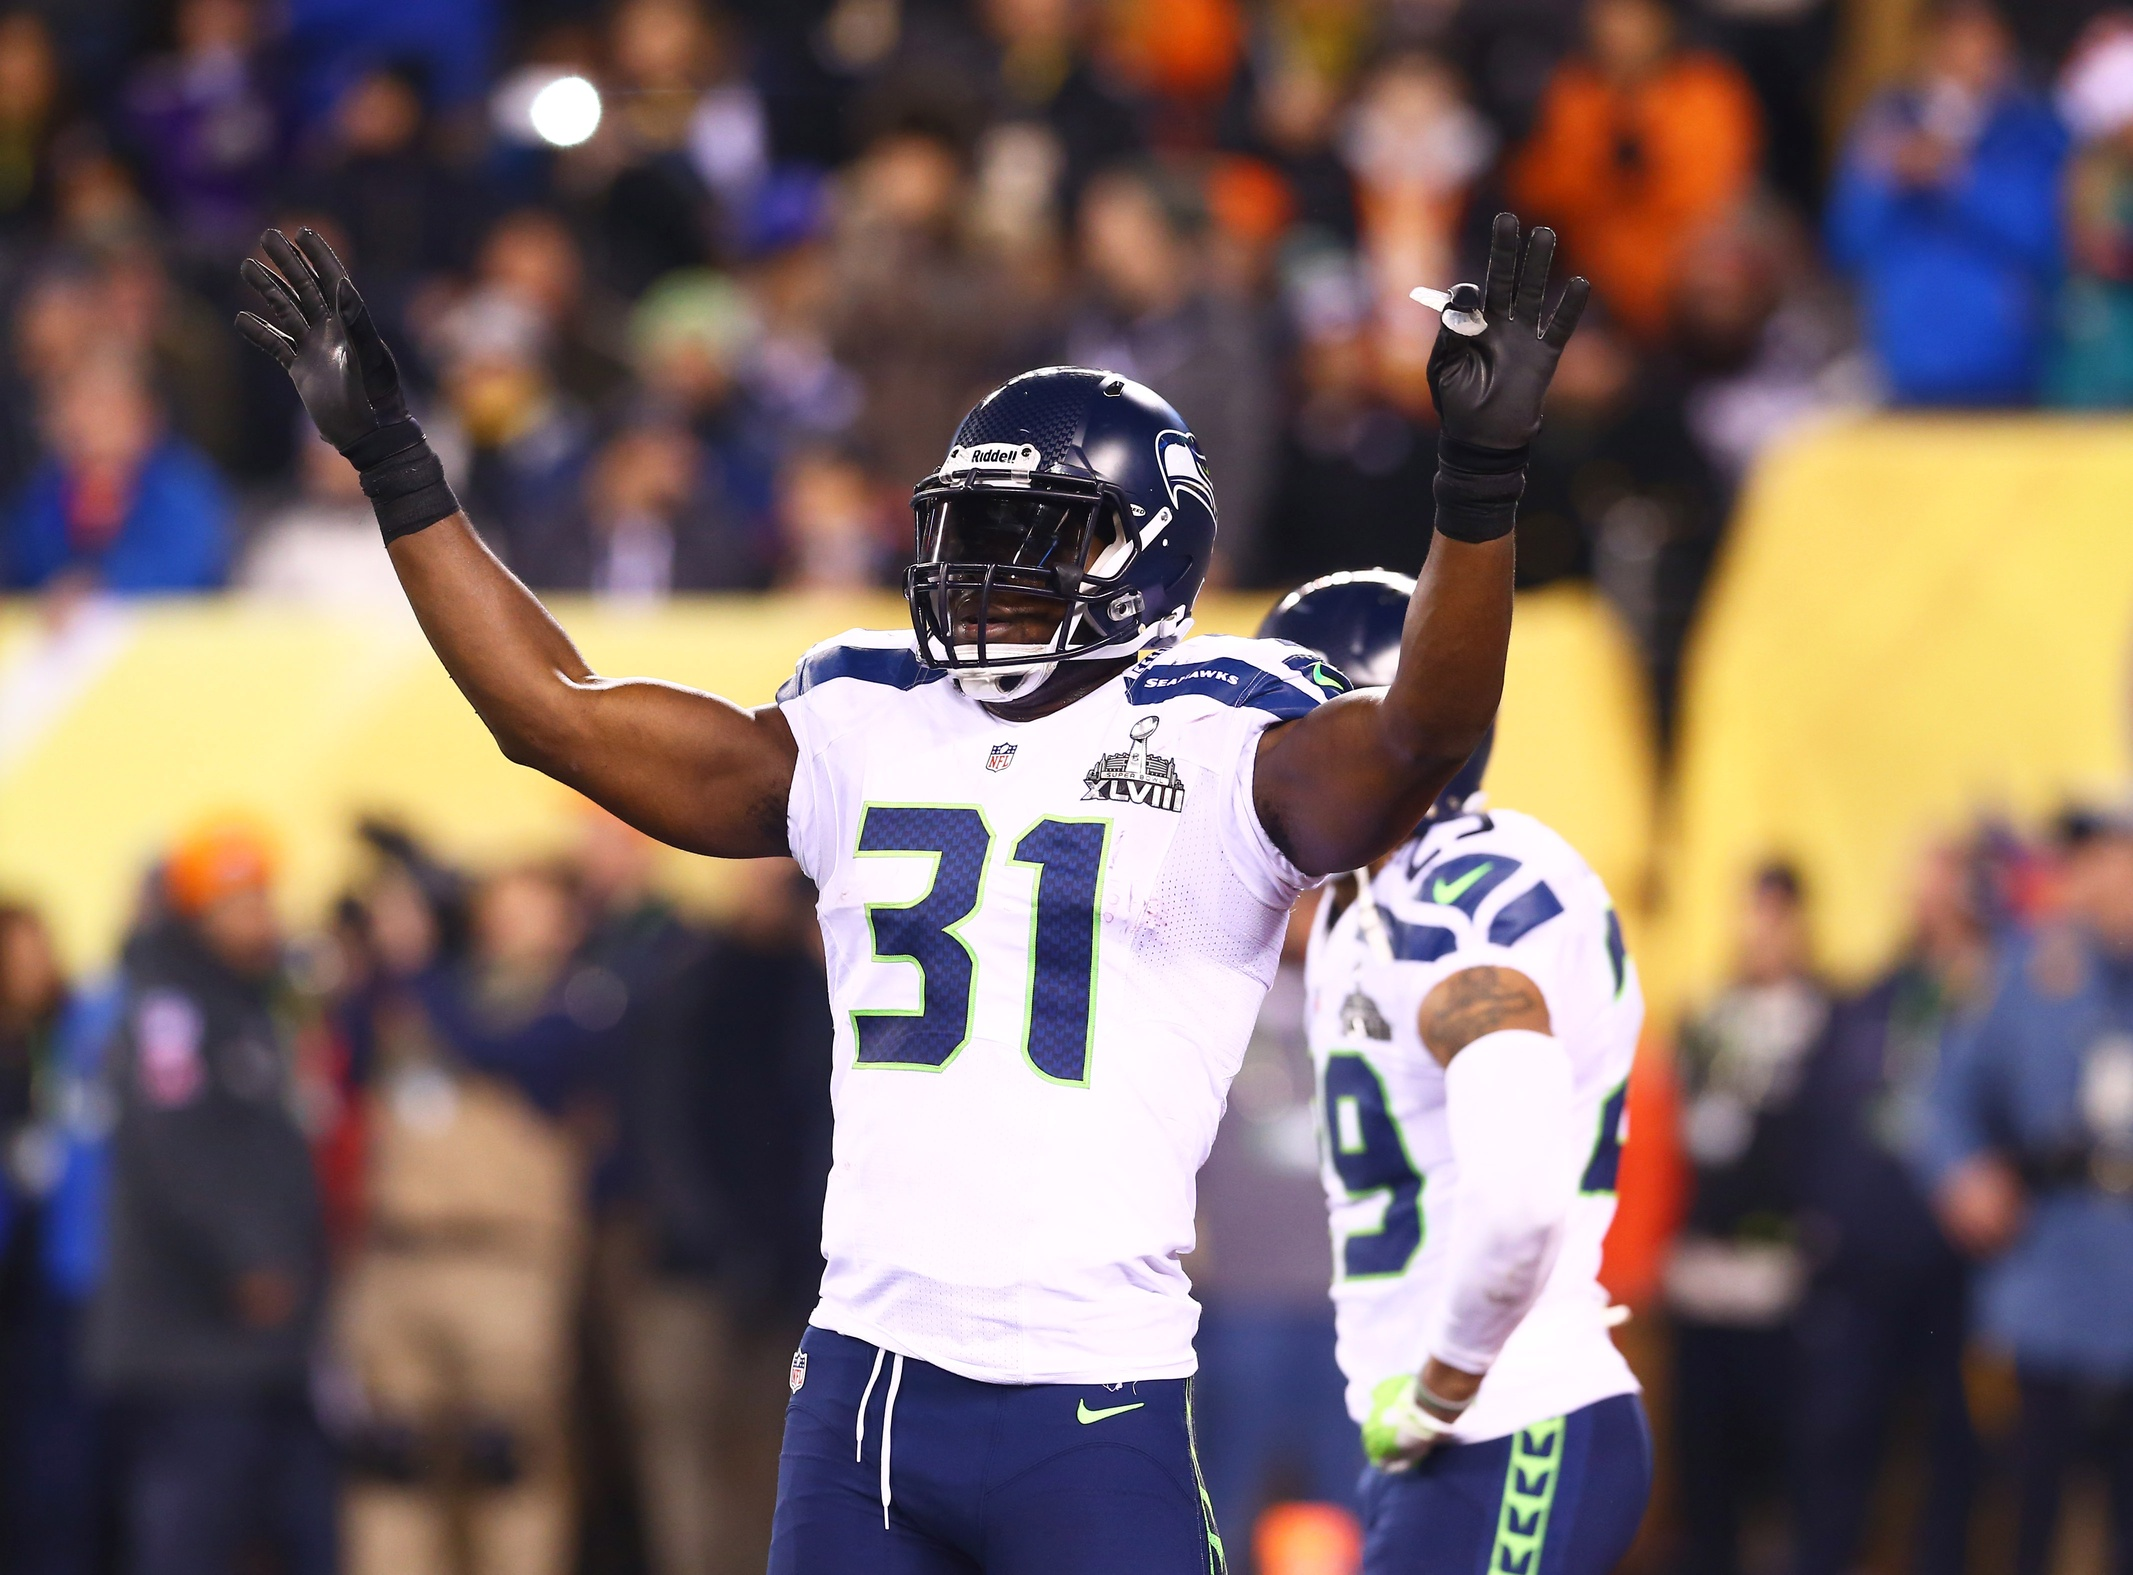 Extension Projection: Kam Chancellor